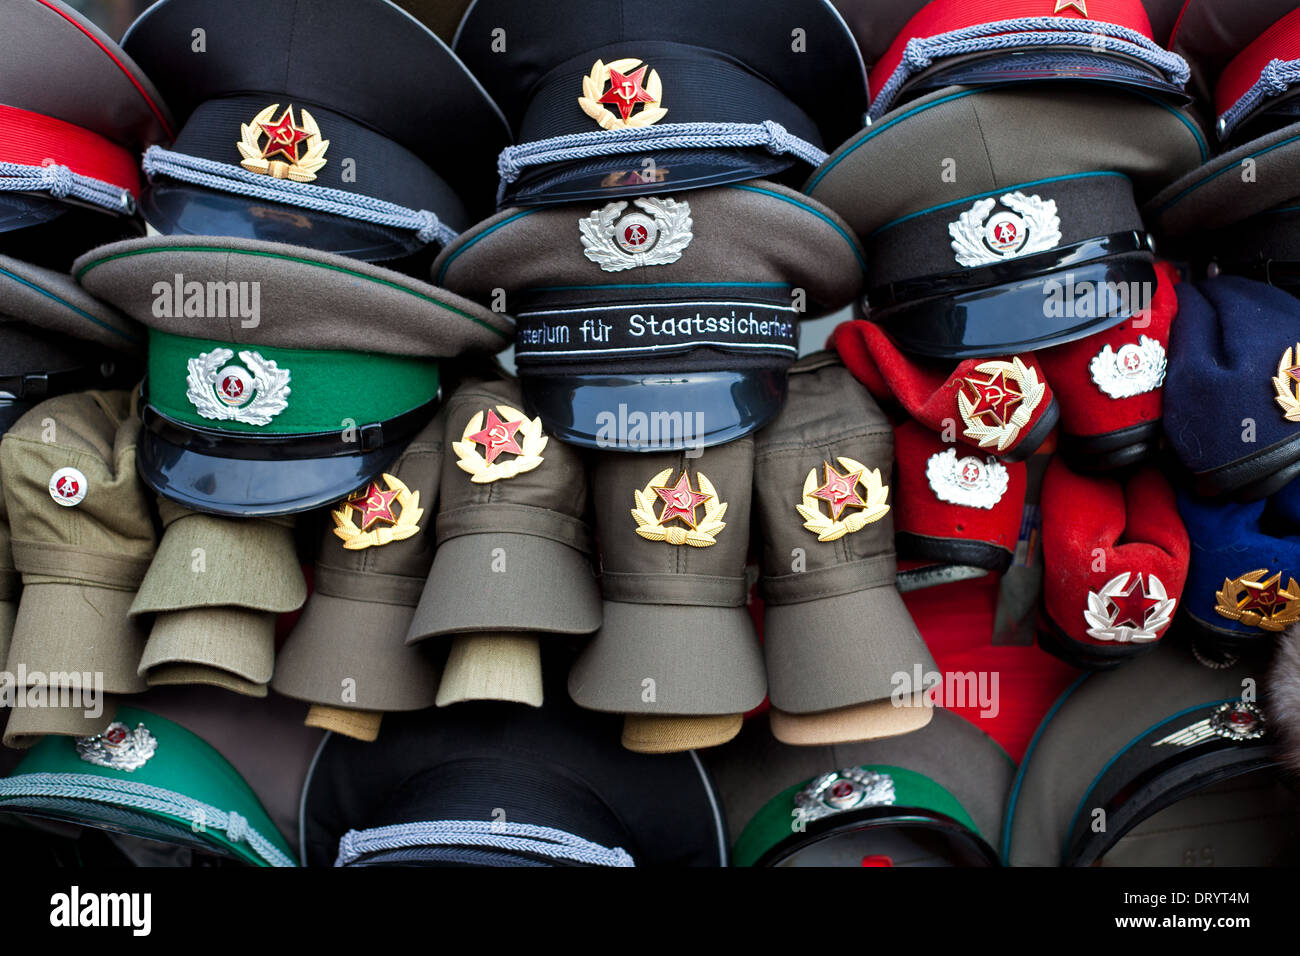 Hats offered at souvenir shop - Stock Image